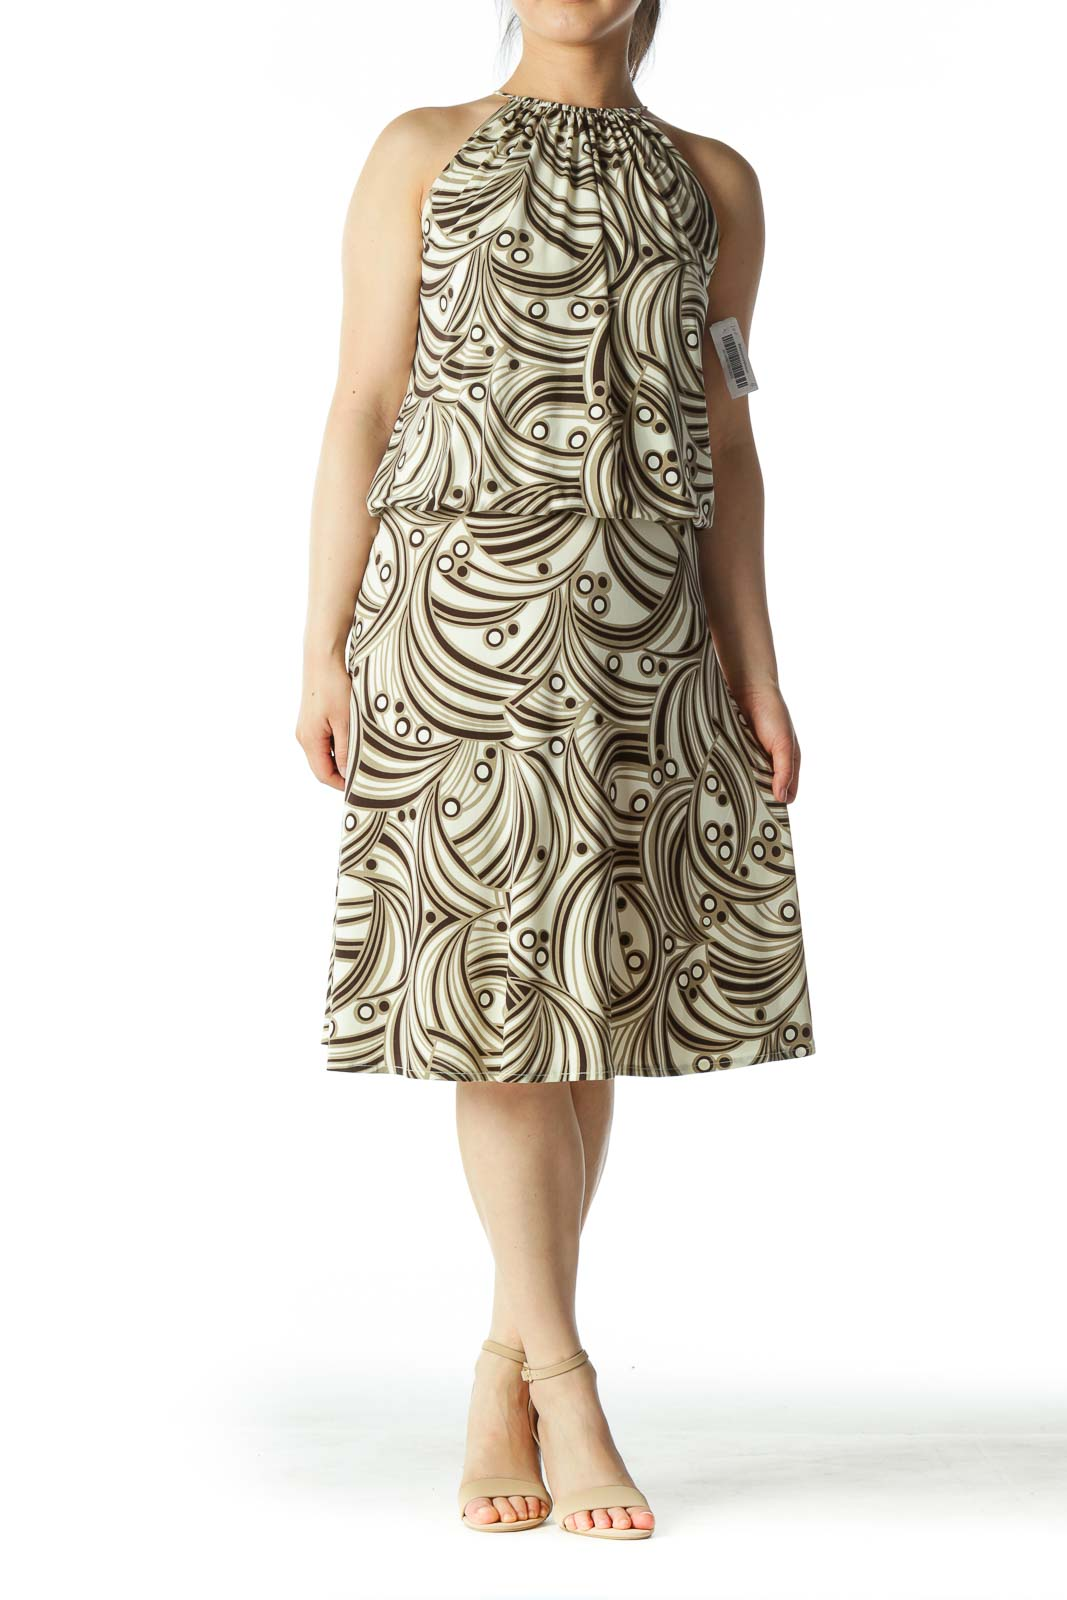 Beige and Multicolor Patterned Dress